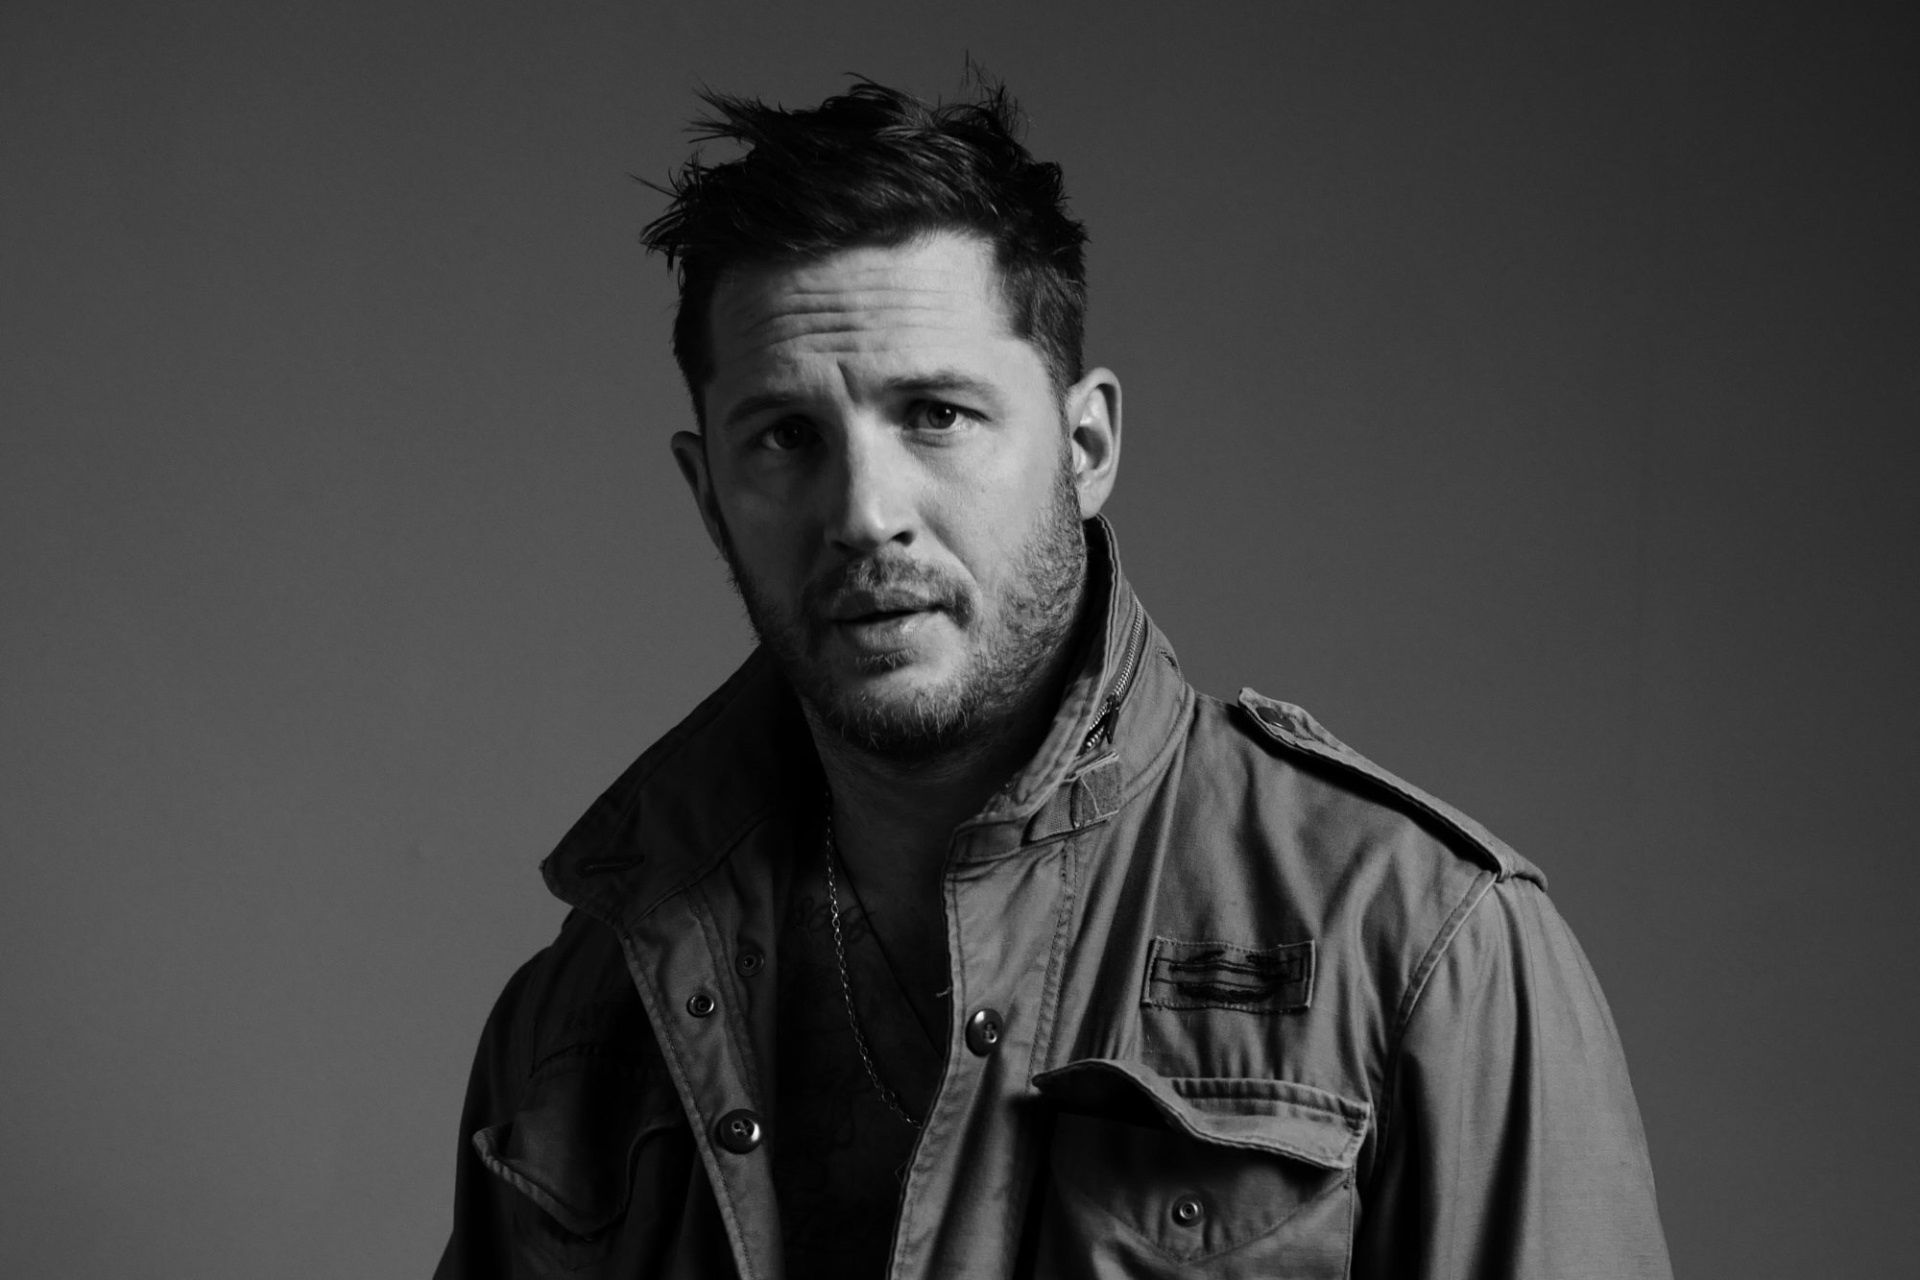 1920x1280 Tom Hardy Wallpaper Hd Backgrounds Images